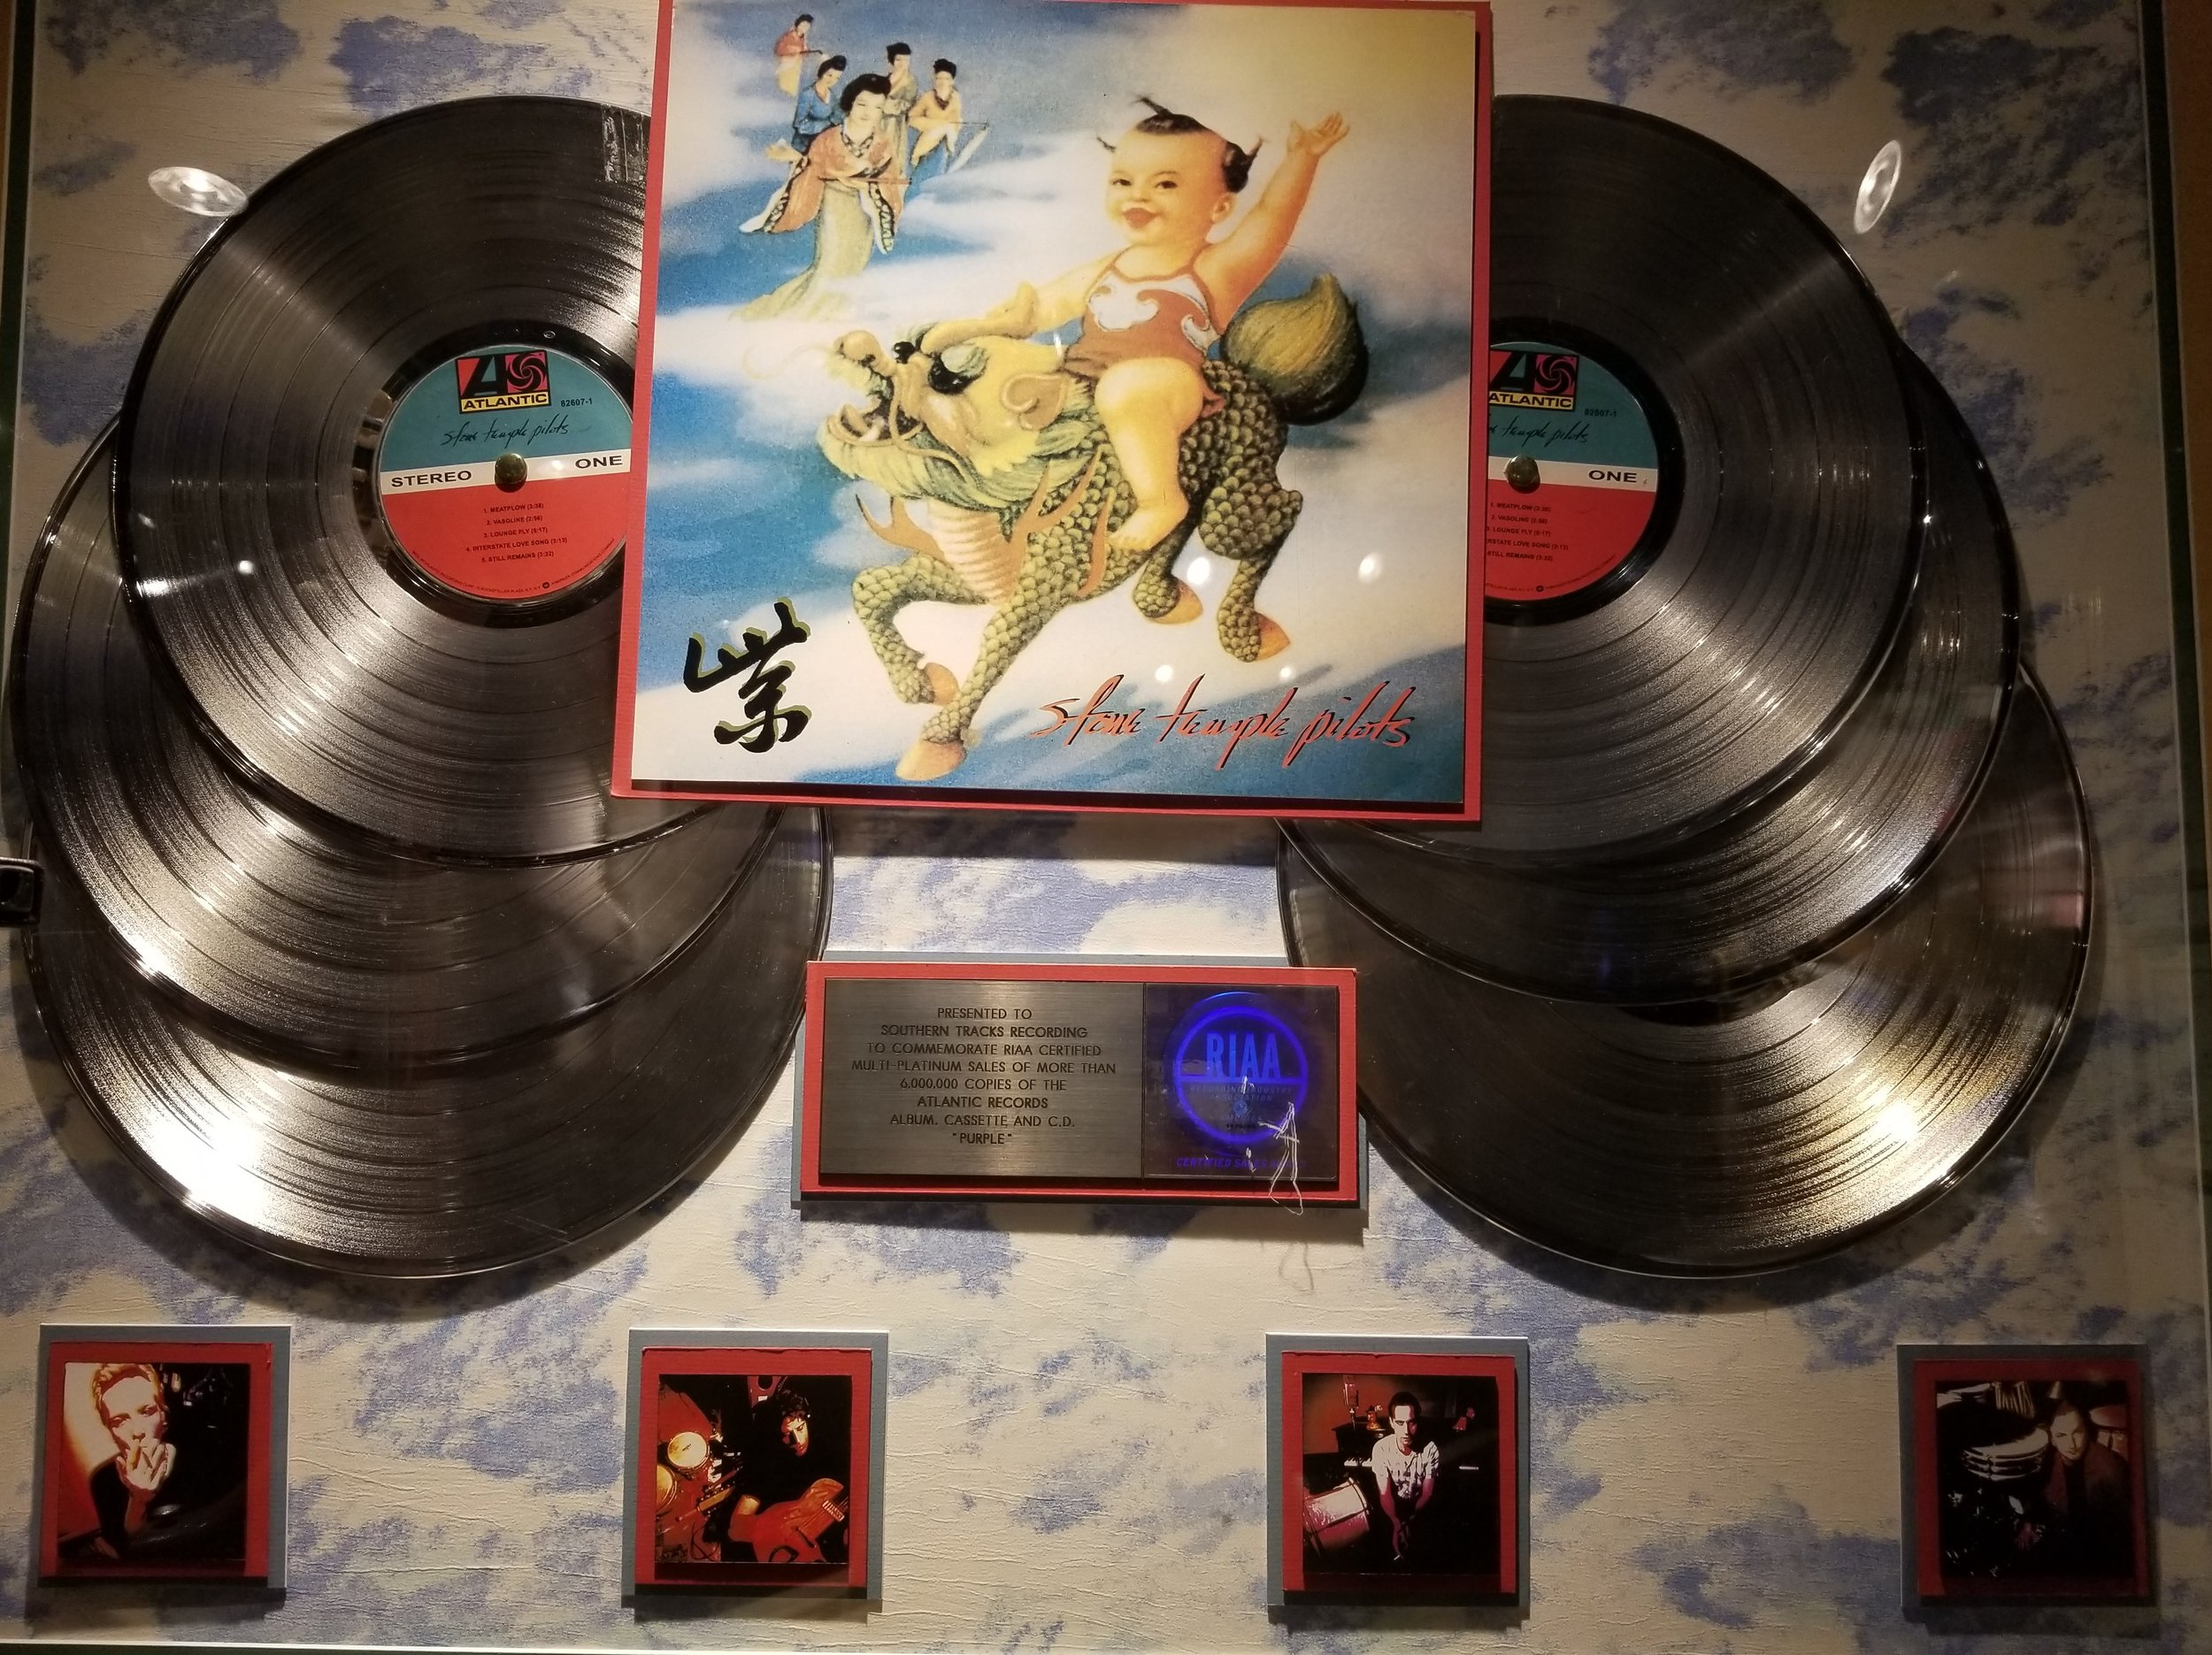 """Multi-platinum sales of more than 6,000,000 copies of the Stone Temple Pilots album """"Purple."""" All of the Gold and Platinum records in the museum were the original awards. Gold record albums in the U.S.A were presented when units exceeded 500,000 in sales and Platinum for sales over one million. Platinum and Gold status is different from country to country according to population"""